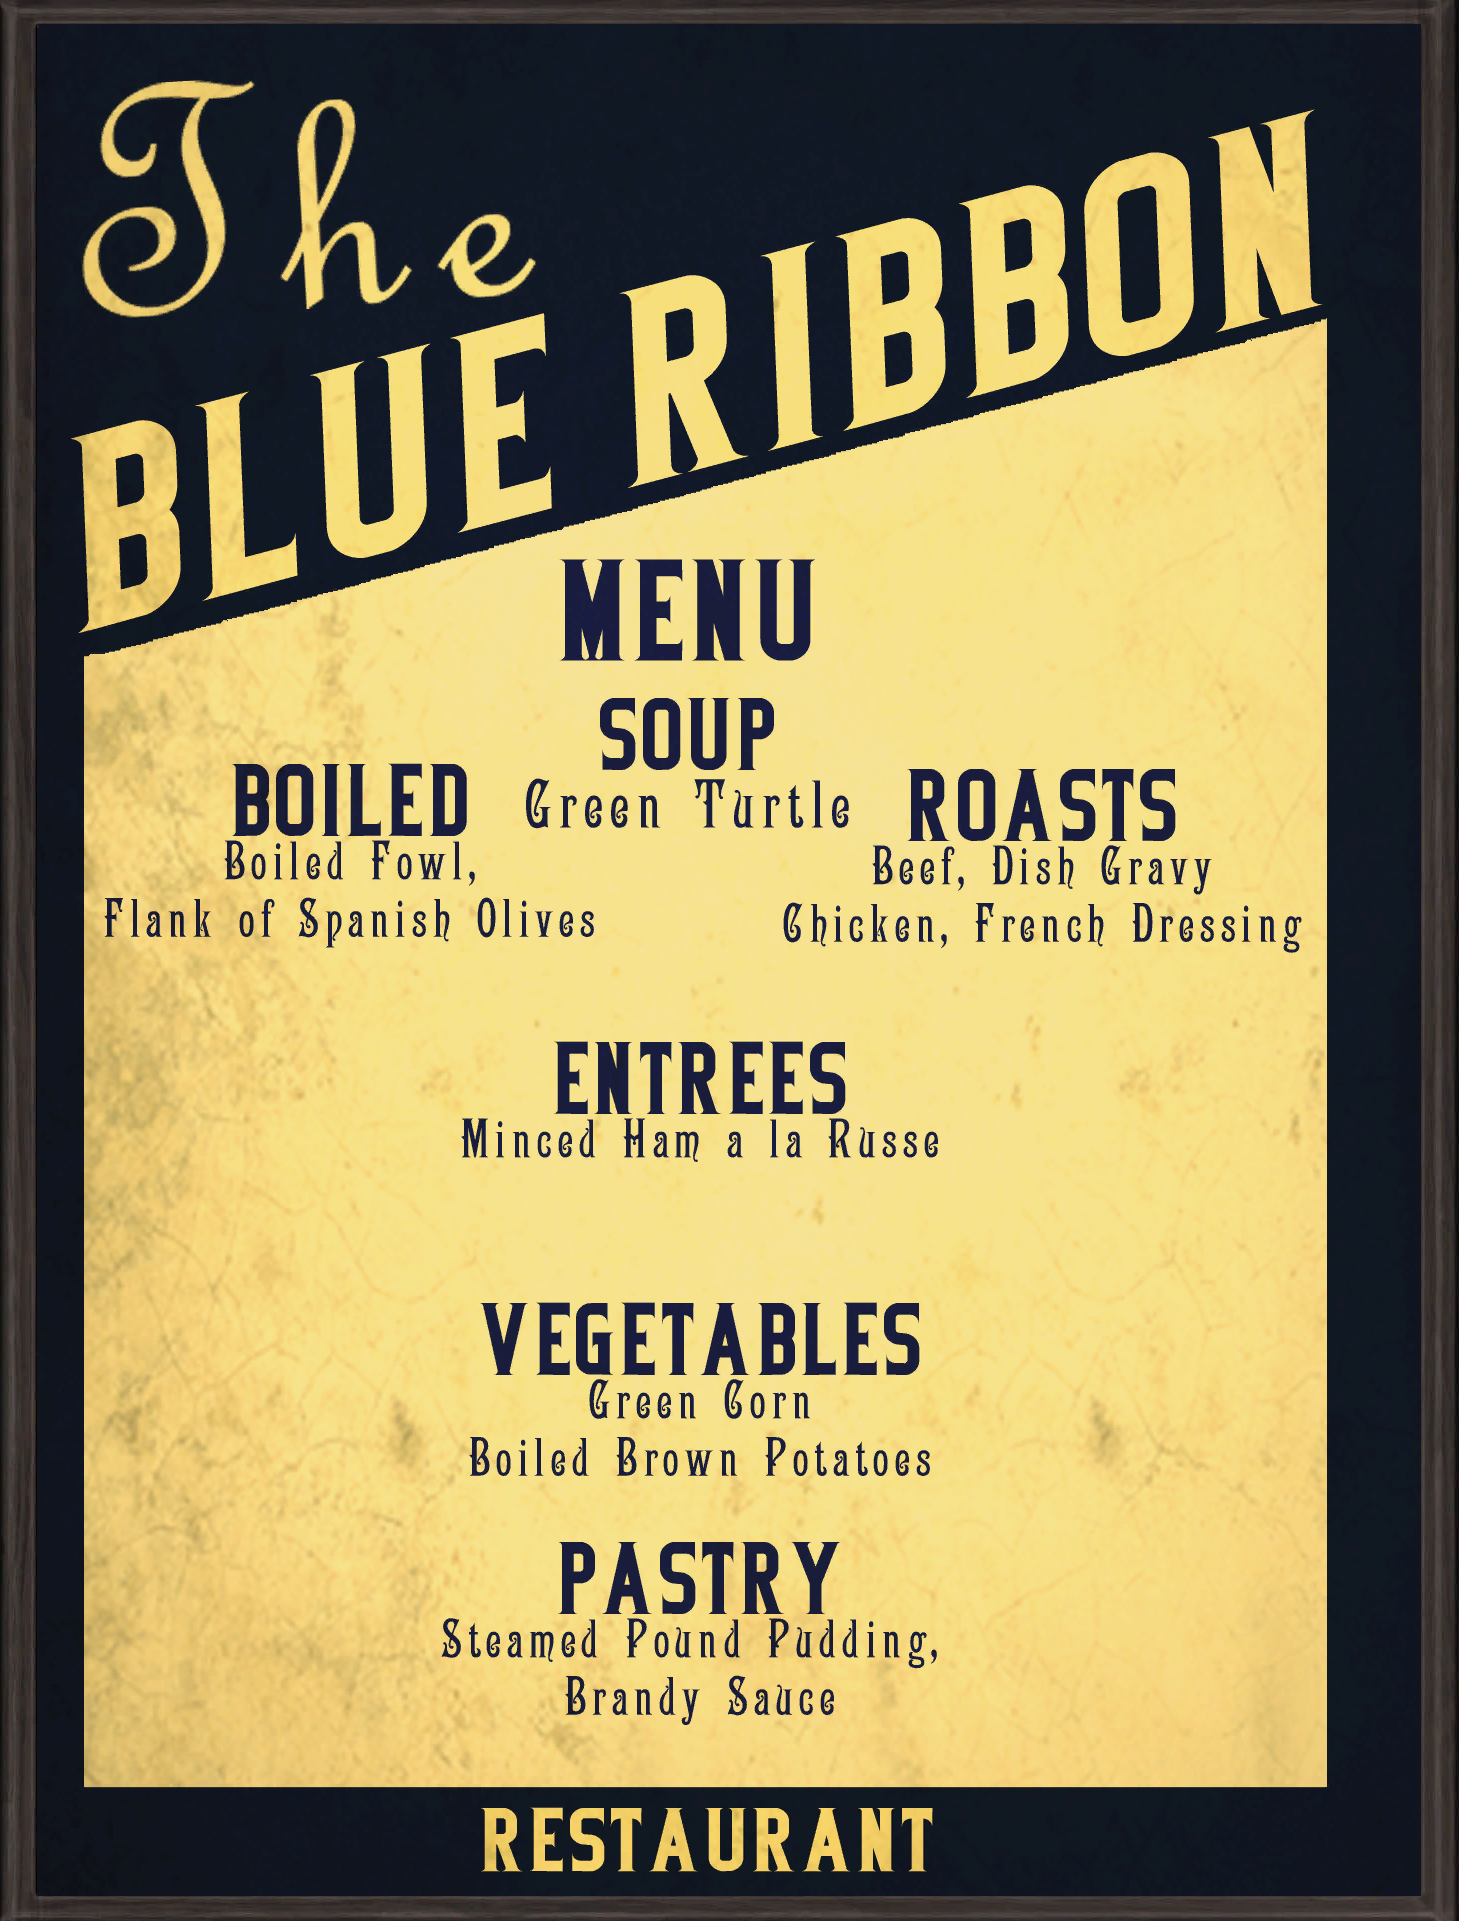 blue ribbon menupng - Blue Restaurant 2015